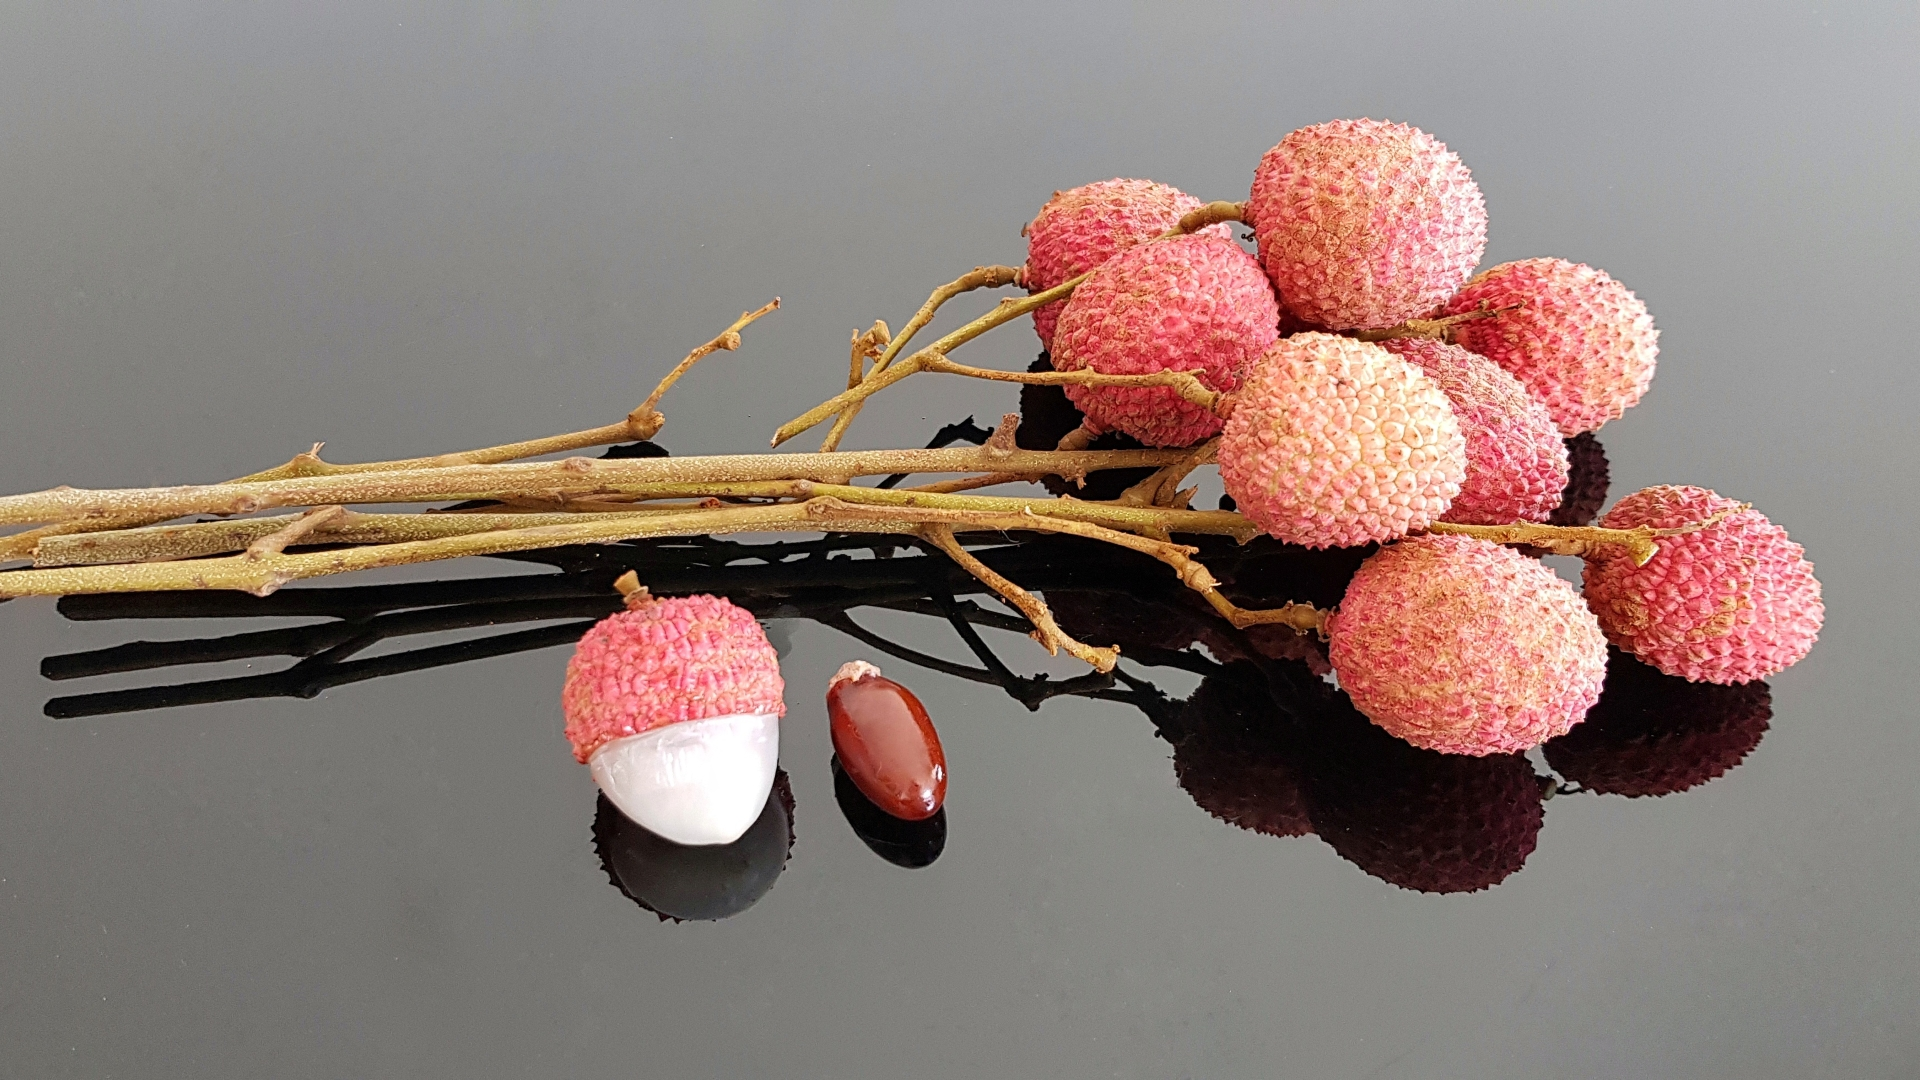 lichi,semen,litchee,lychee,yield,germ,food,seminal fluid,seed,sow,fruits,lichee,nutrient,with,litchi,hd